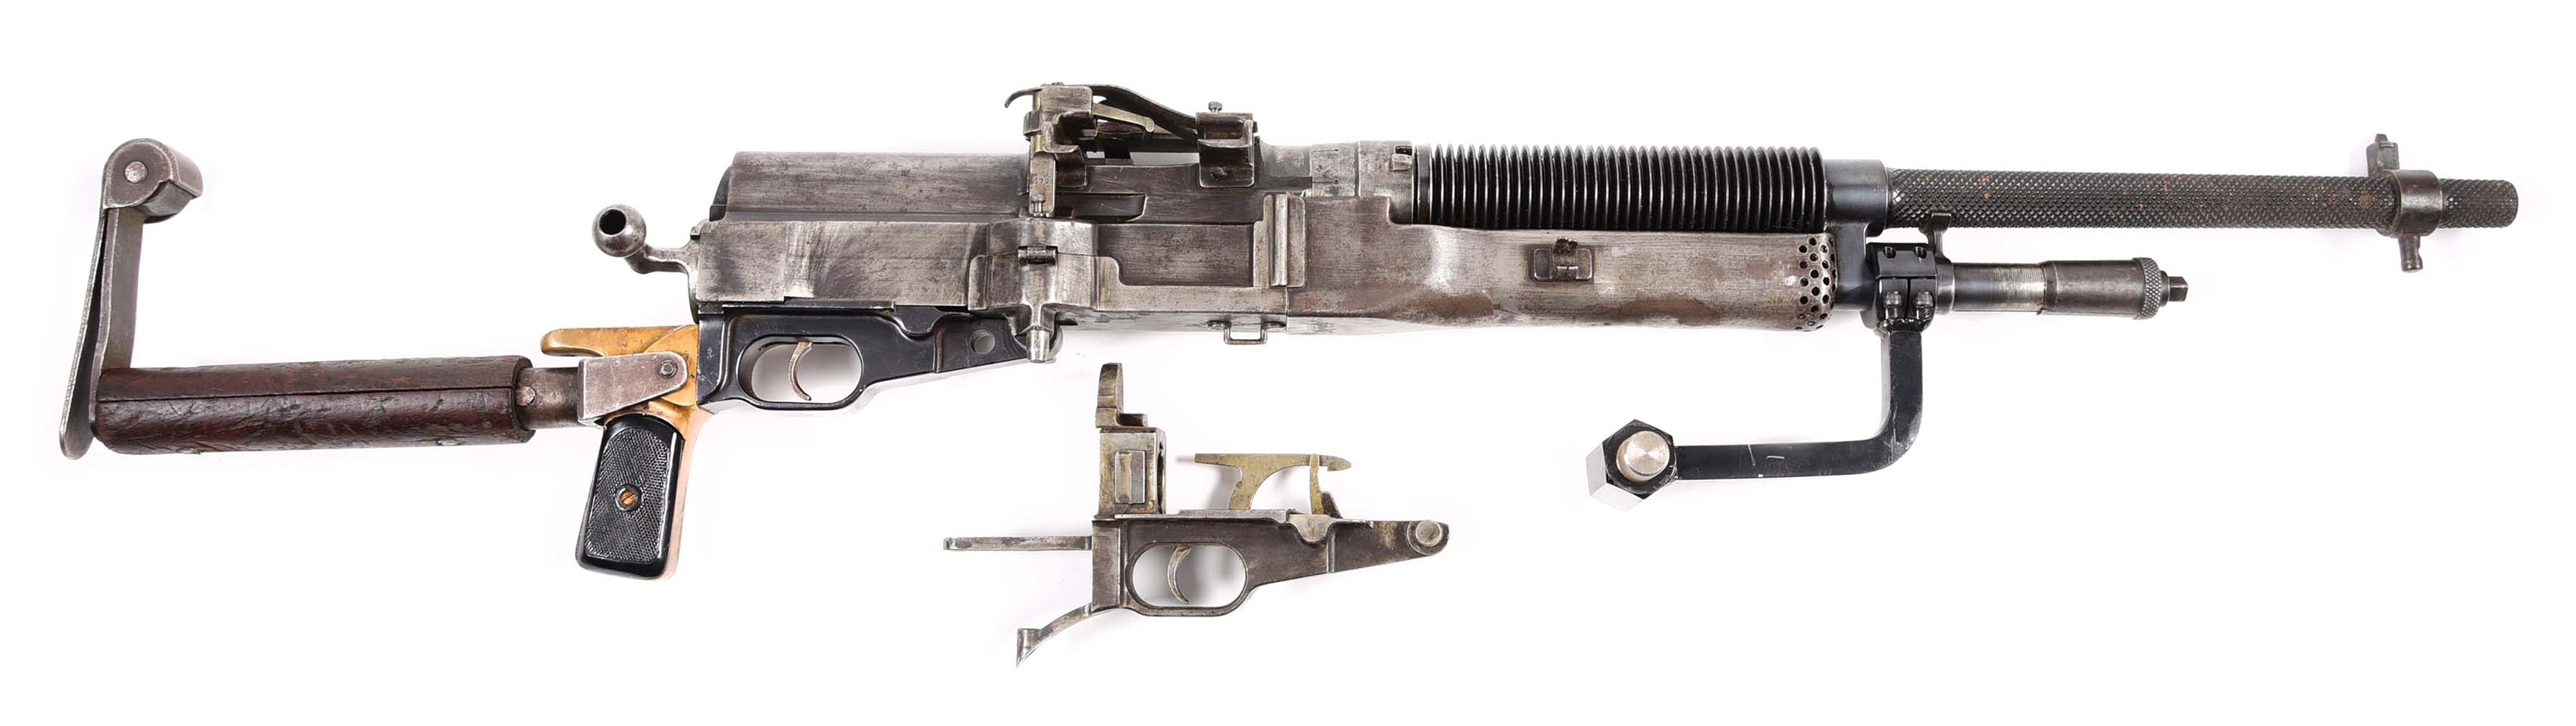 (N) SOUTH AMERICAN CONTRACT HOTCHKISS PORTATIVE MODEL 1910 MACHINE GUN WITH SHOULDER EXTENSION (CURIO AND RELIC).